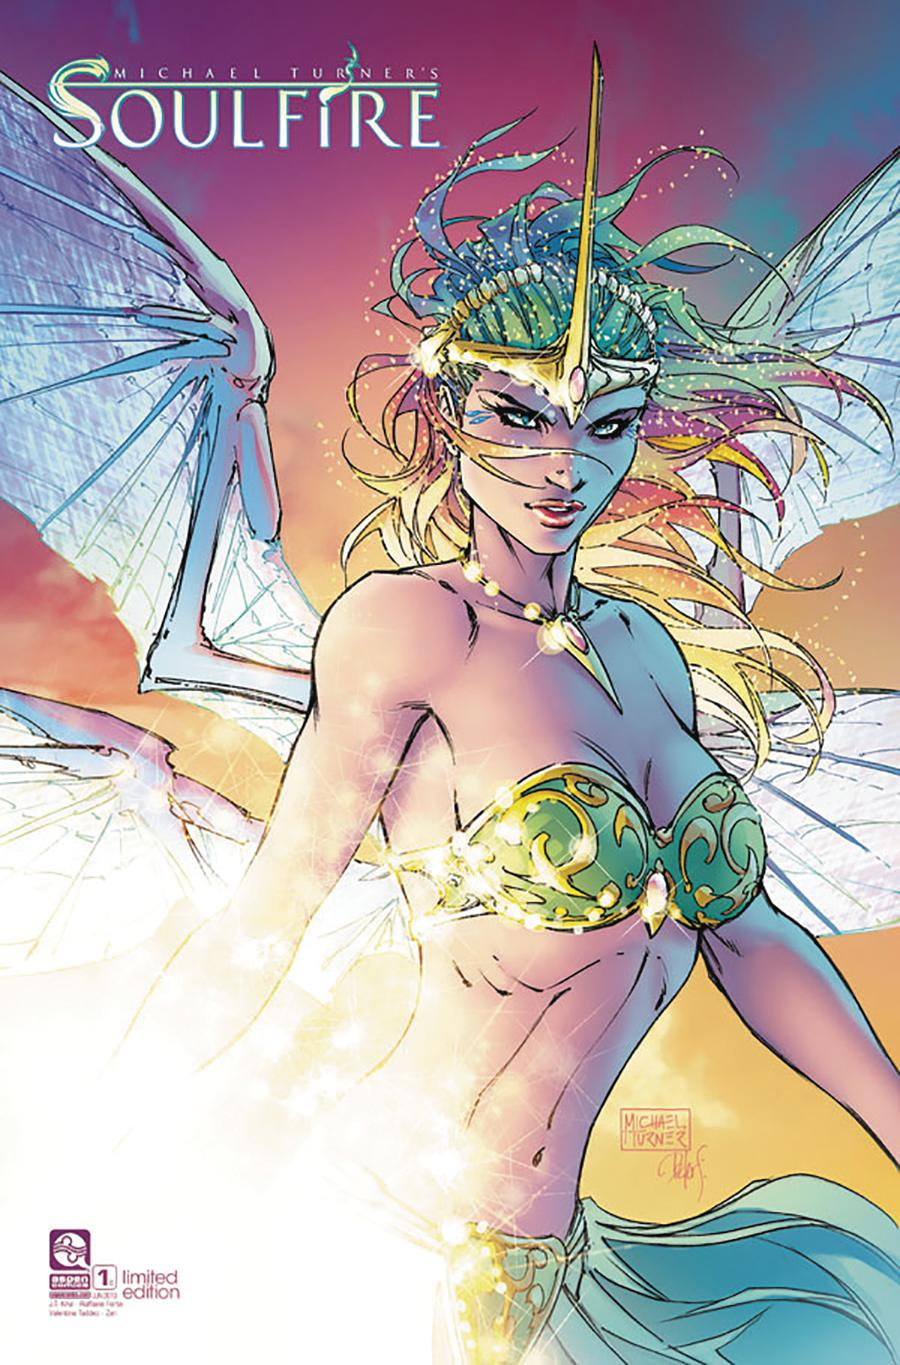 Soulfire Vol 6 #1 Cover D Variant Michael Turner Special Cover